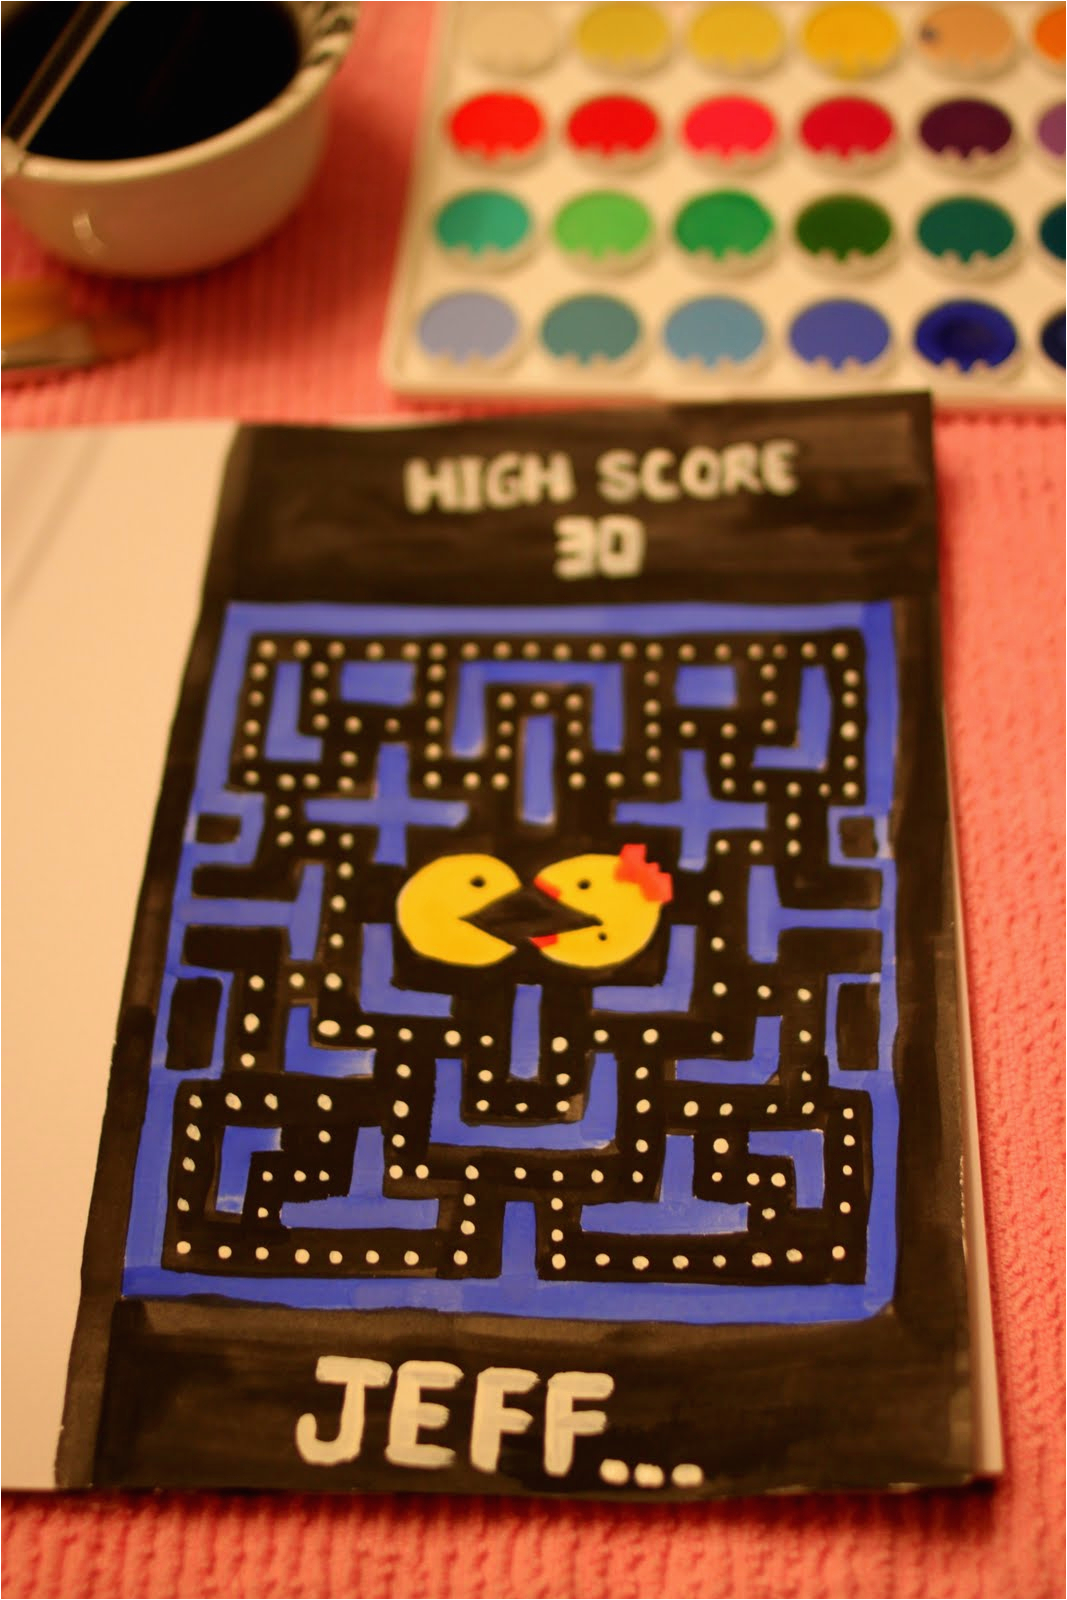 happy 30th jeff handmade pac man